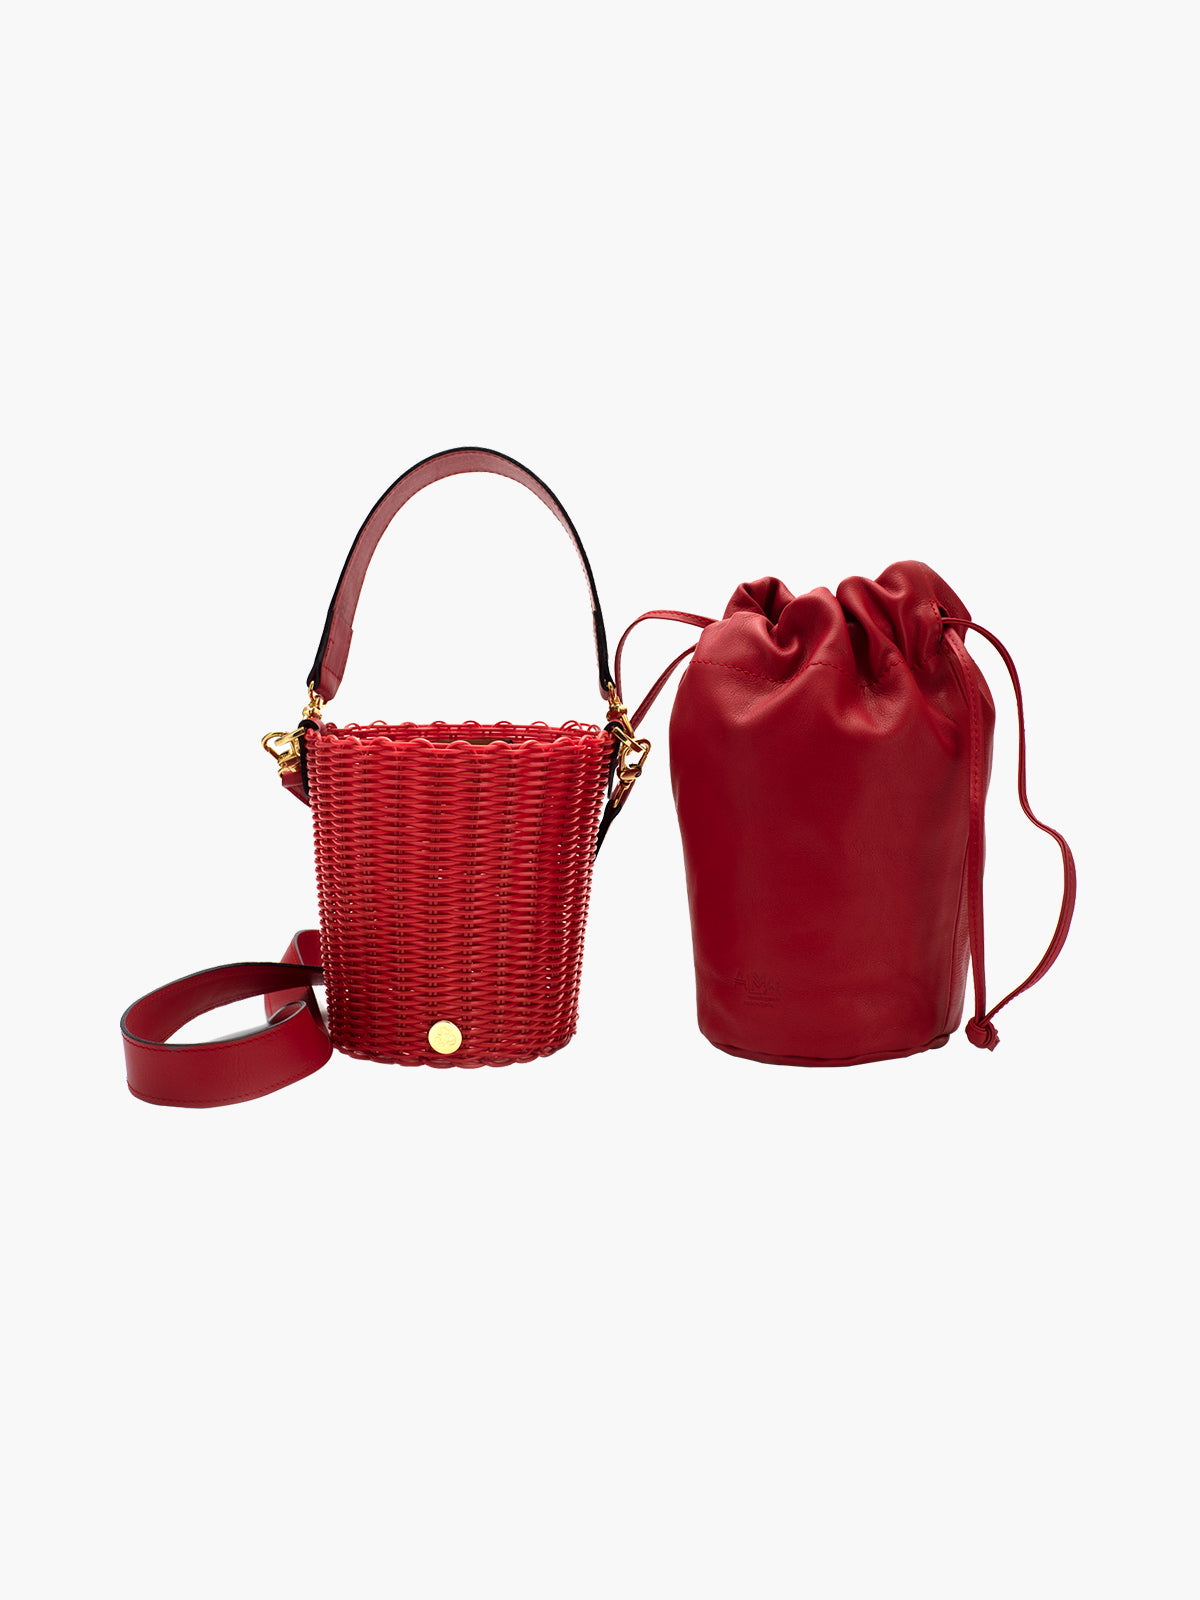 Tonati Woven Leather Bucket | Red Tonati Woven Leather Bucket | Red